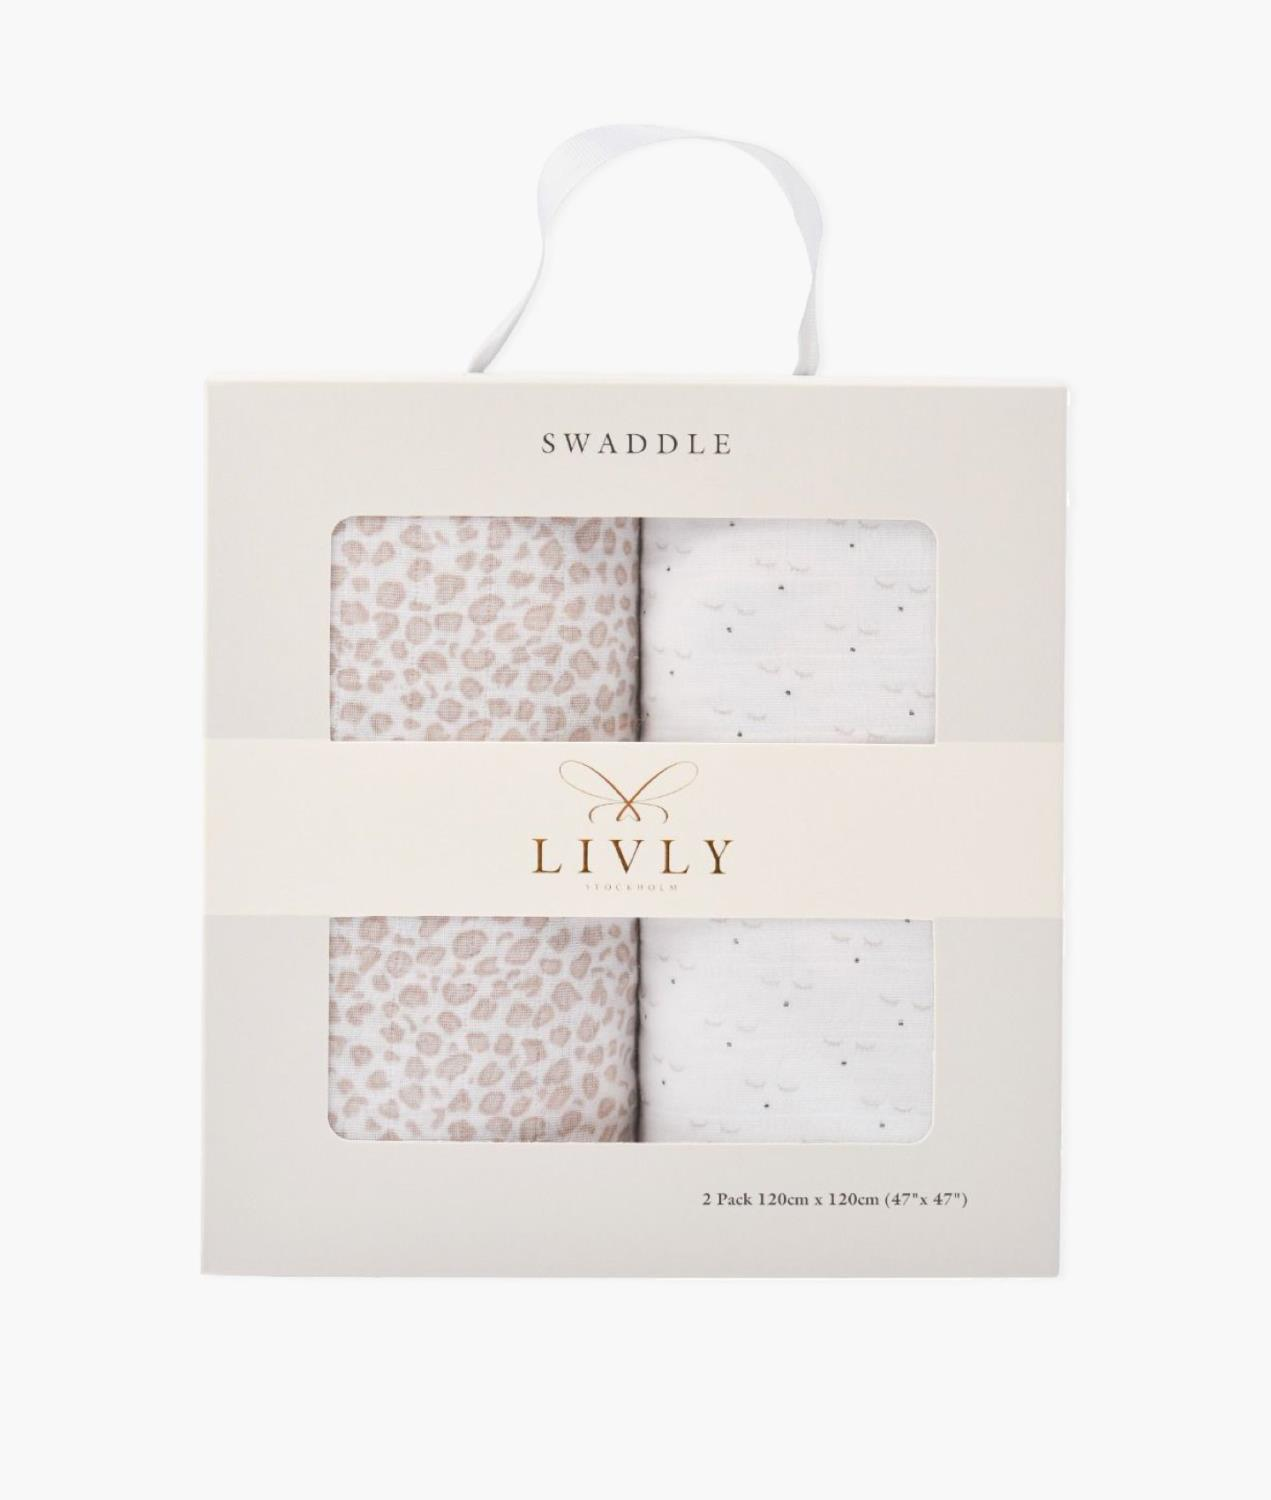 LIVLY Swaddle 2-pack